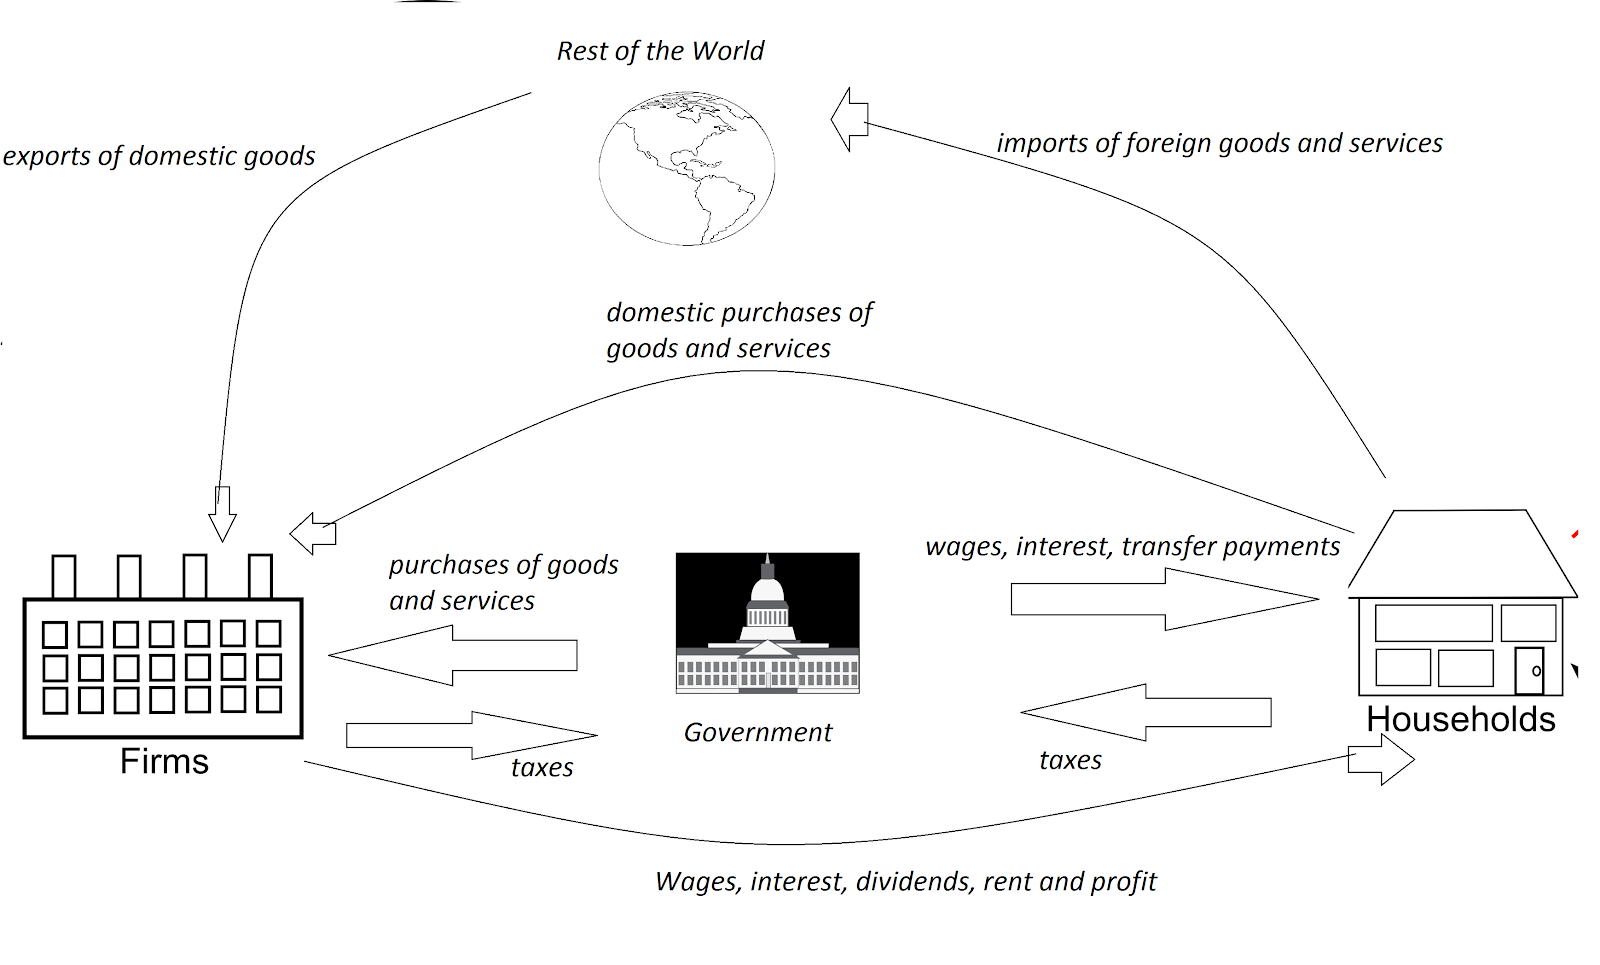 Introduction to macroeconomics definitions circular flow and the making the circular flow of income diagram with government and trade nvjuhfo Images